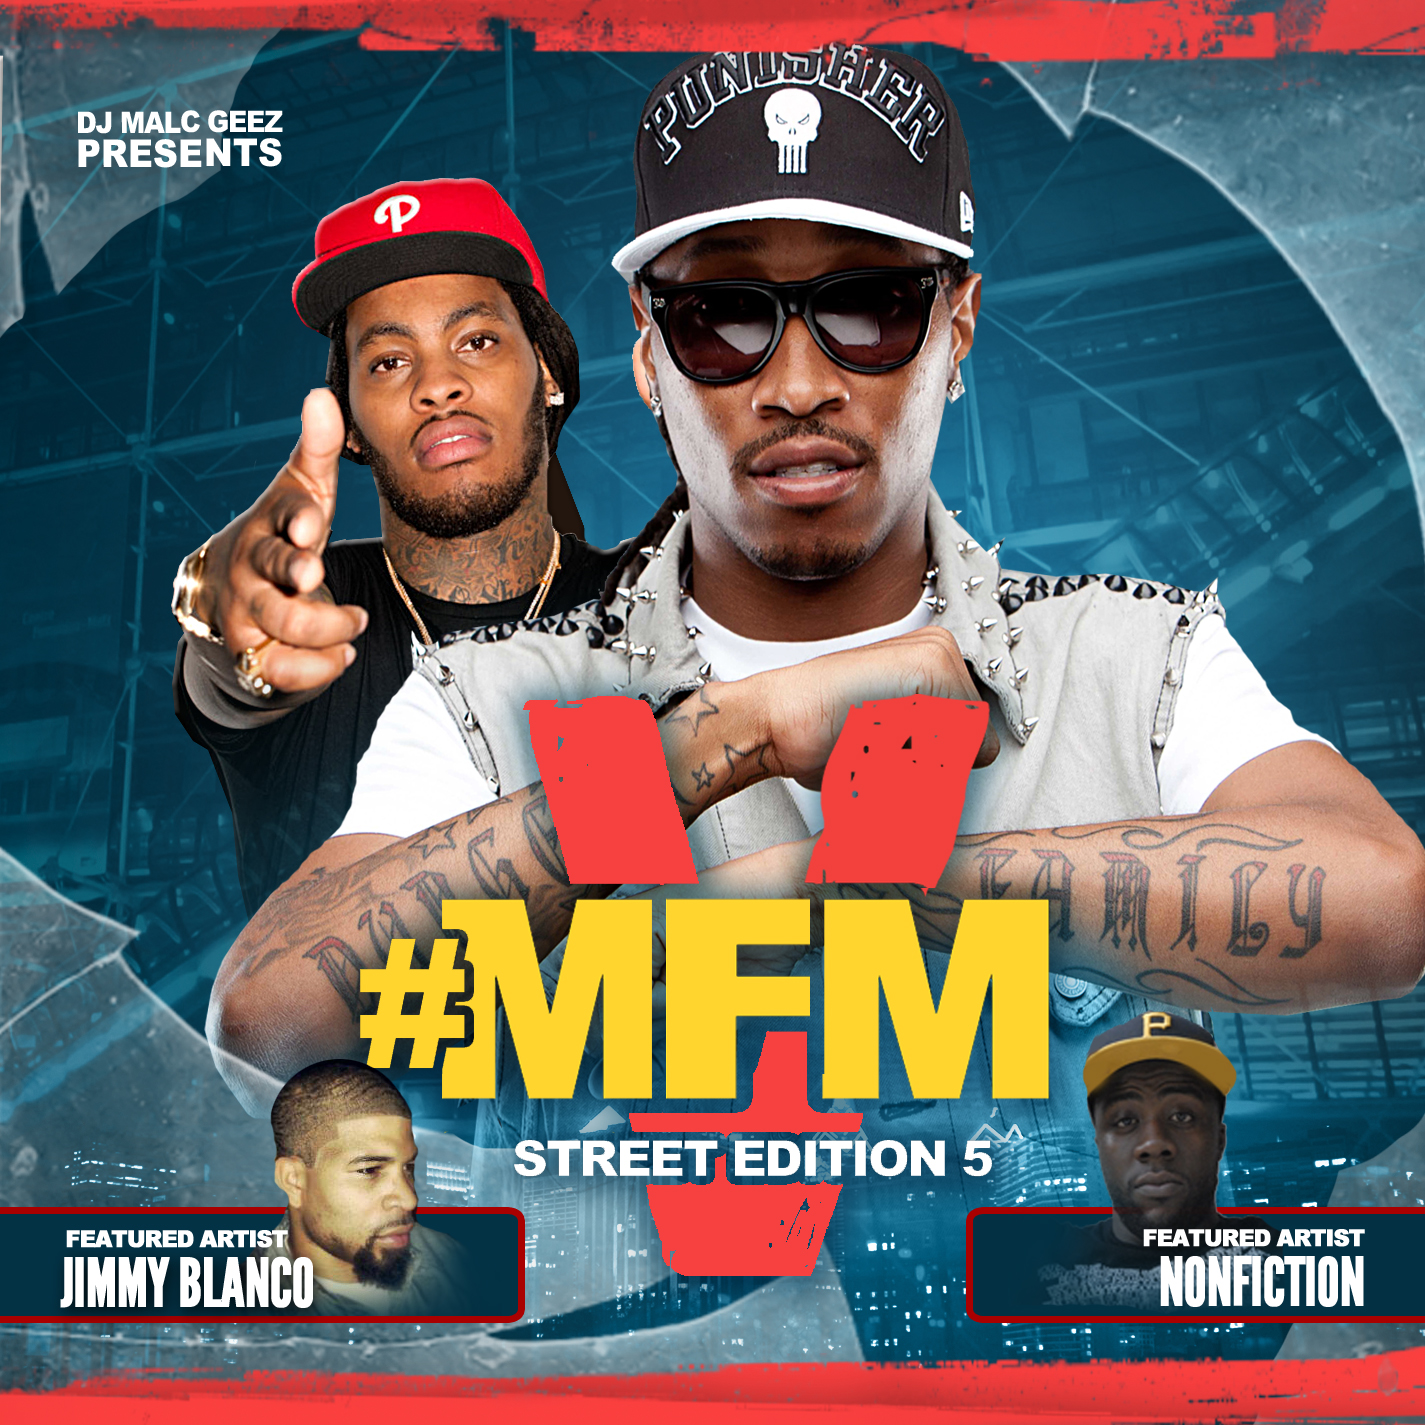 MFM5 DJ Malc Geez   #MFM [Street Edition] 5 The Mixtape